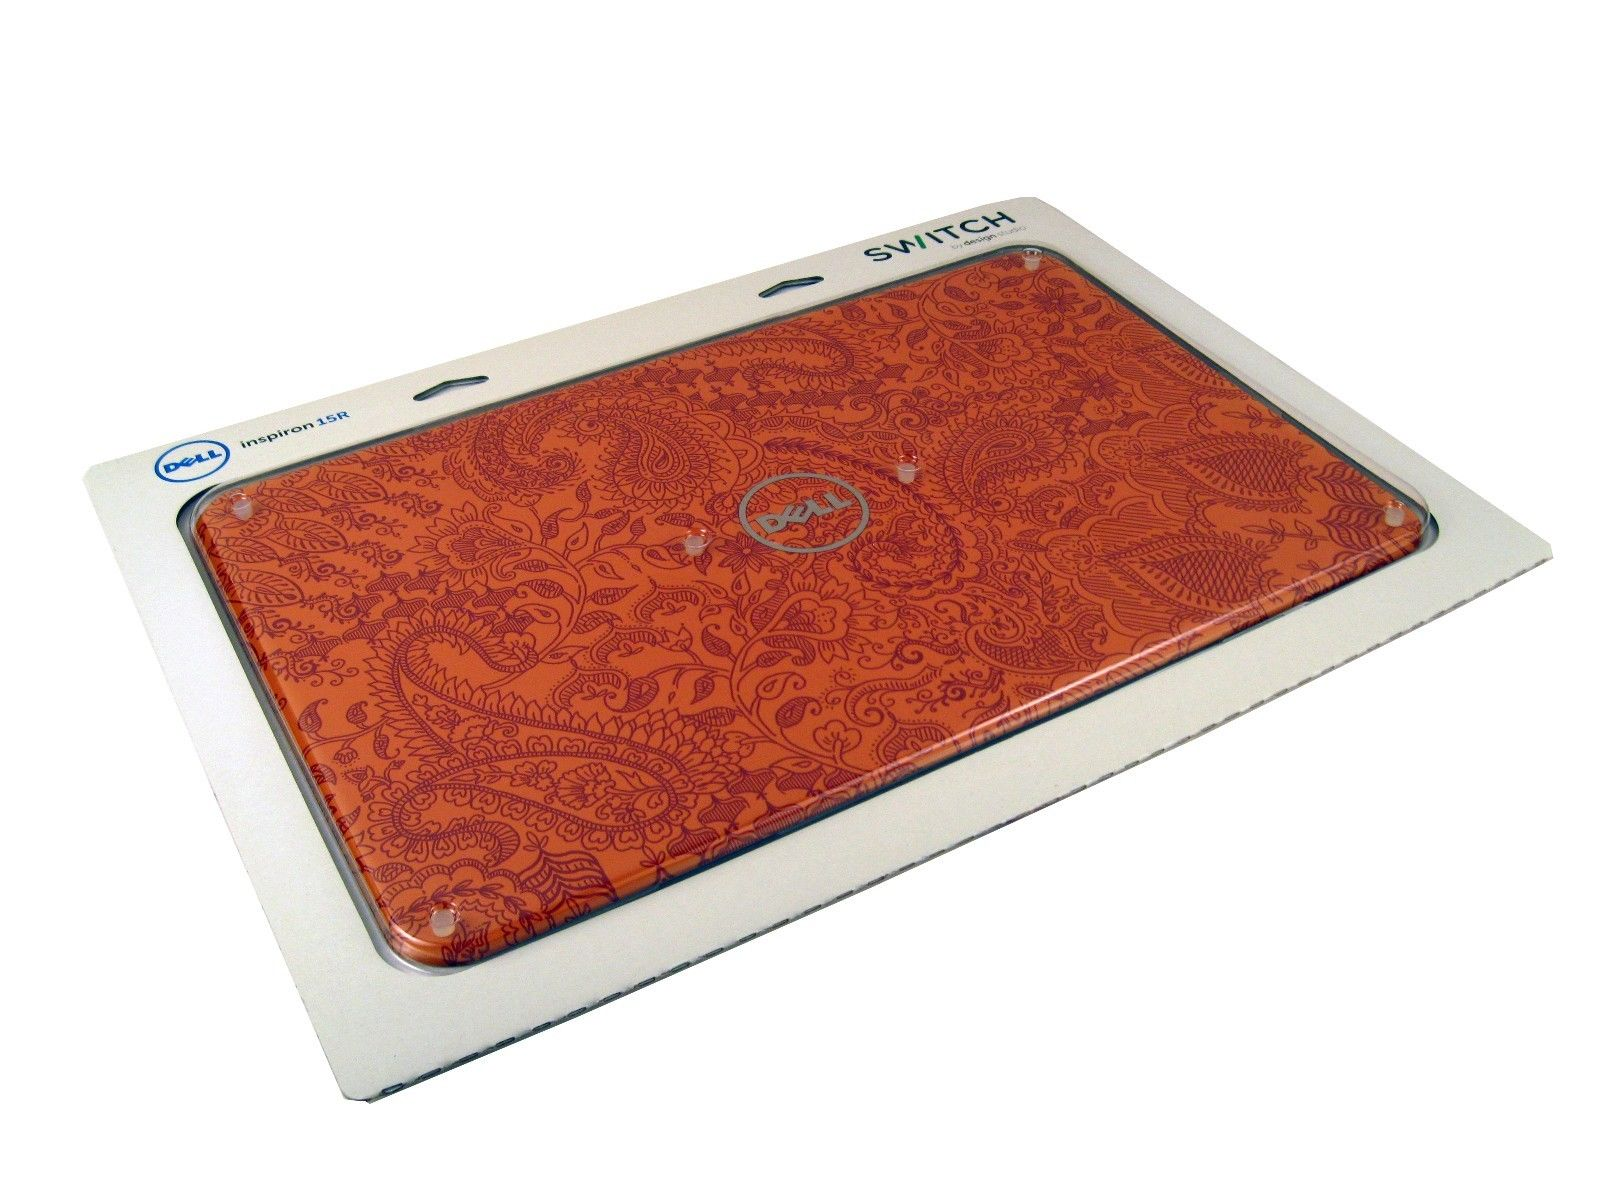 NEW Dell 6K7MP Inspiron N5110 Laptop LCD Cover (Mehndi Design)